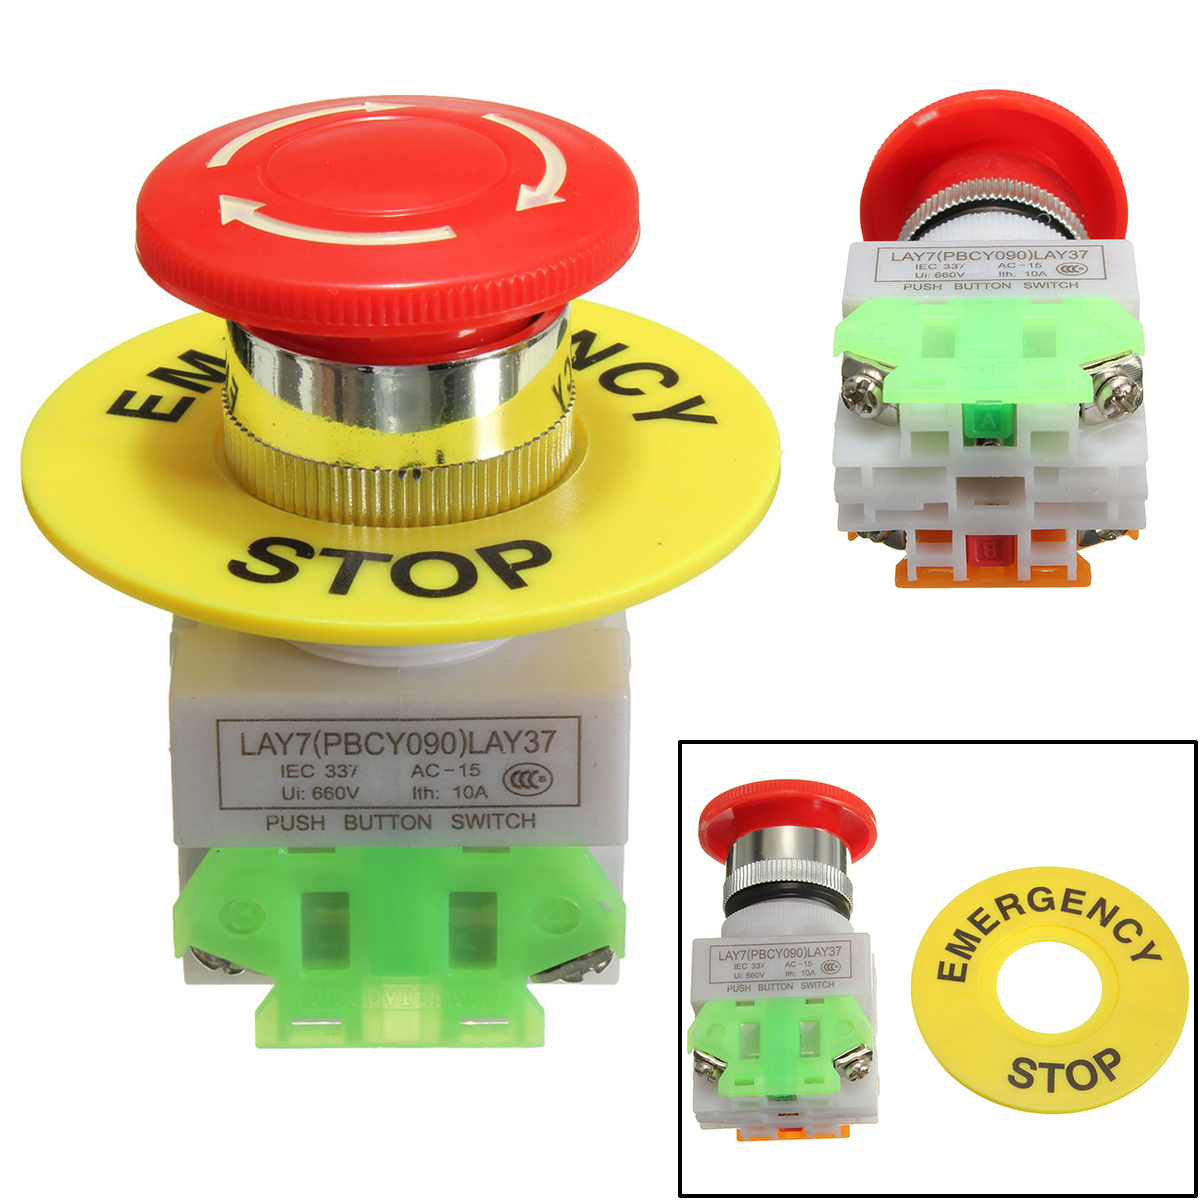 1pc New Emergency Stop Push Button Switch Self Locking Red Mushroom Switch 660V 10A la125j 11b 660v 10a momentary type button switches black 10 pcs